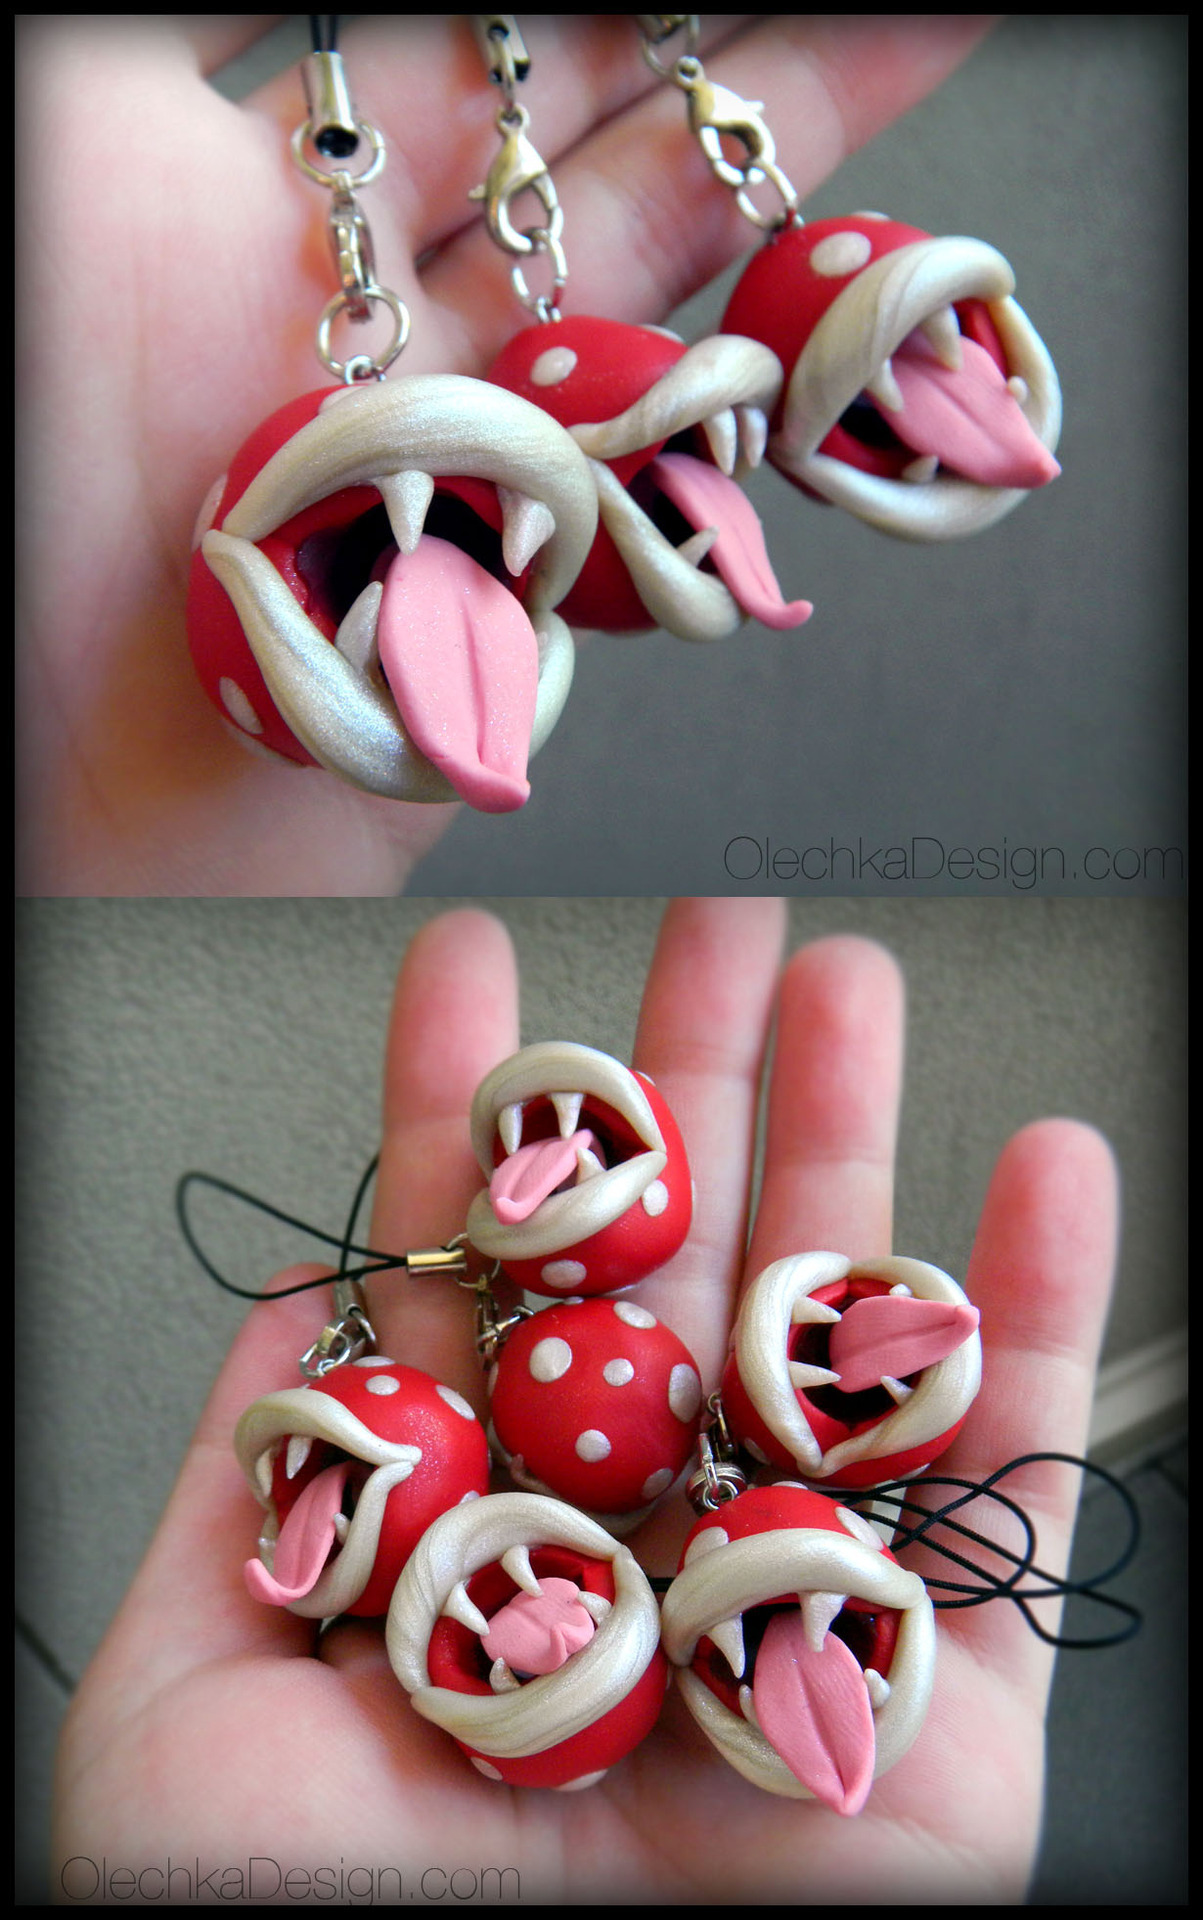 Piranha Plant charms by Olechka (Etsy, $17)